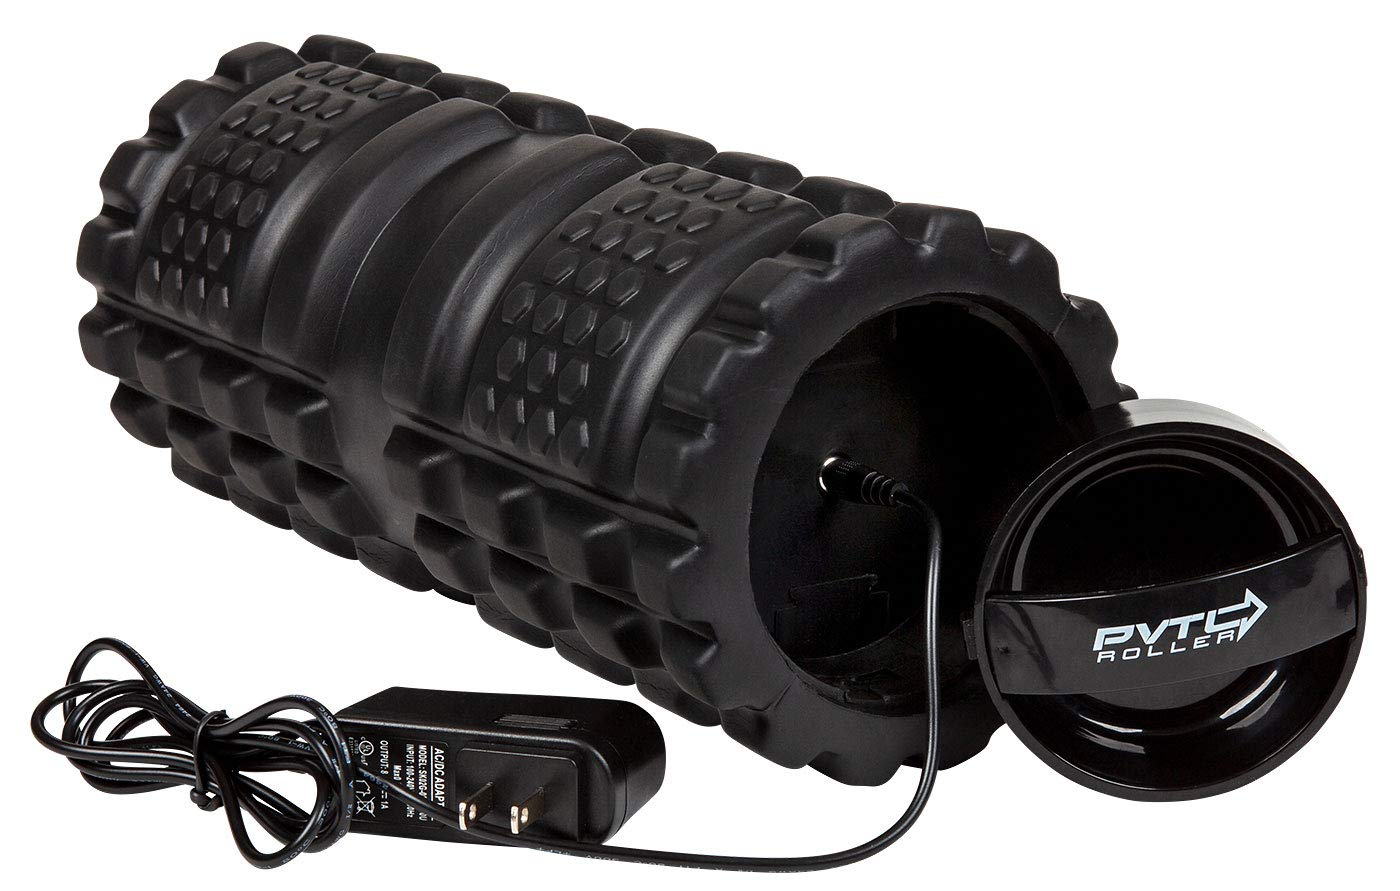 PVTL Roller 3-Speed Vibrating Foam Roller - High Intensity Vibration for Warm-Up, Recovery, Mobility, Training & Deep Tissue Trigger Point Sports Massage Therapy - Firm Density Electric Best Guarantee